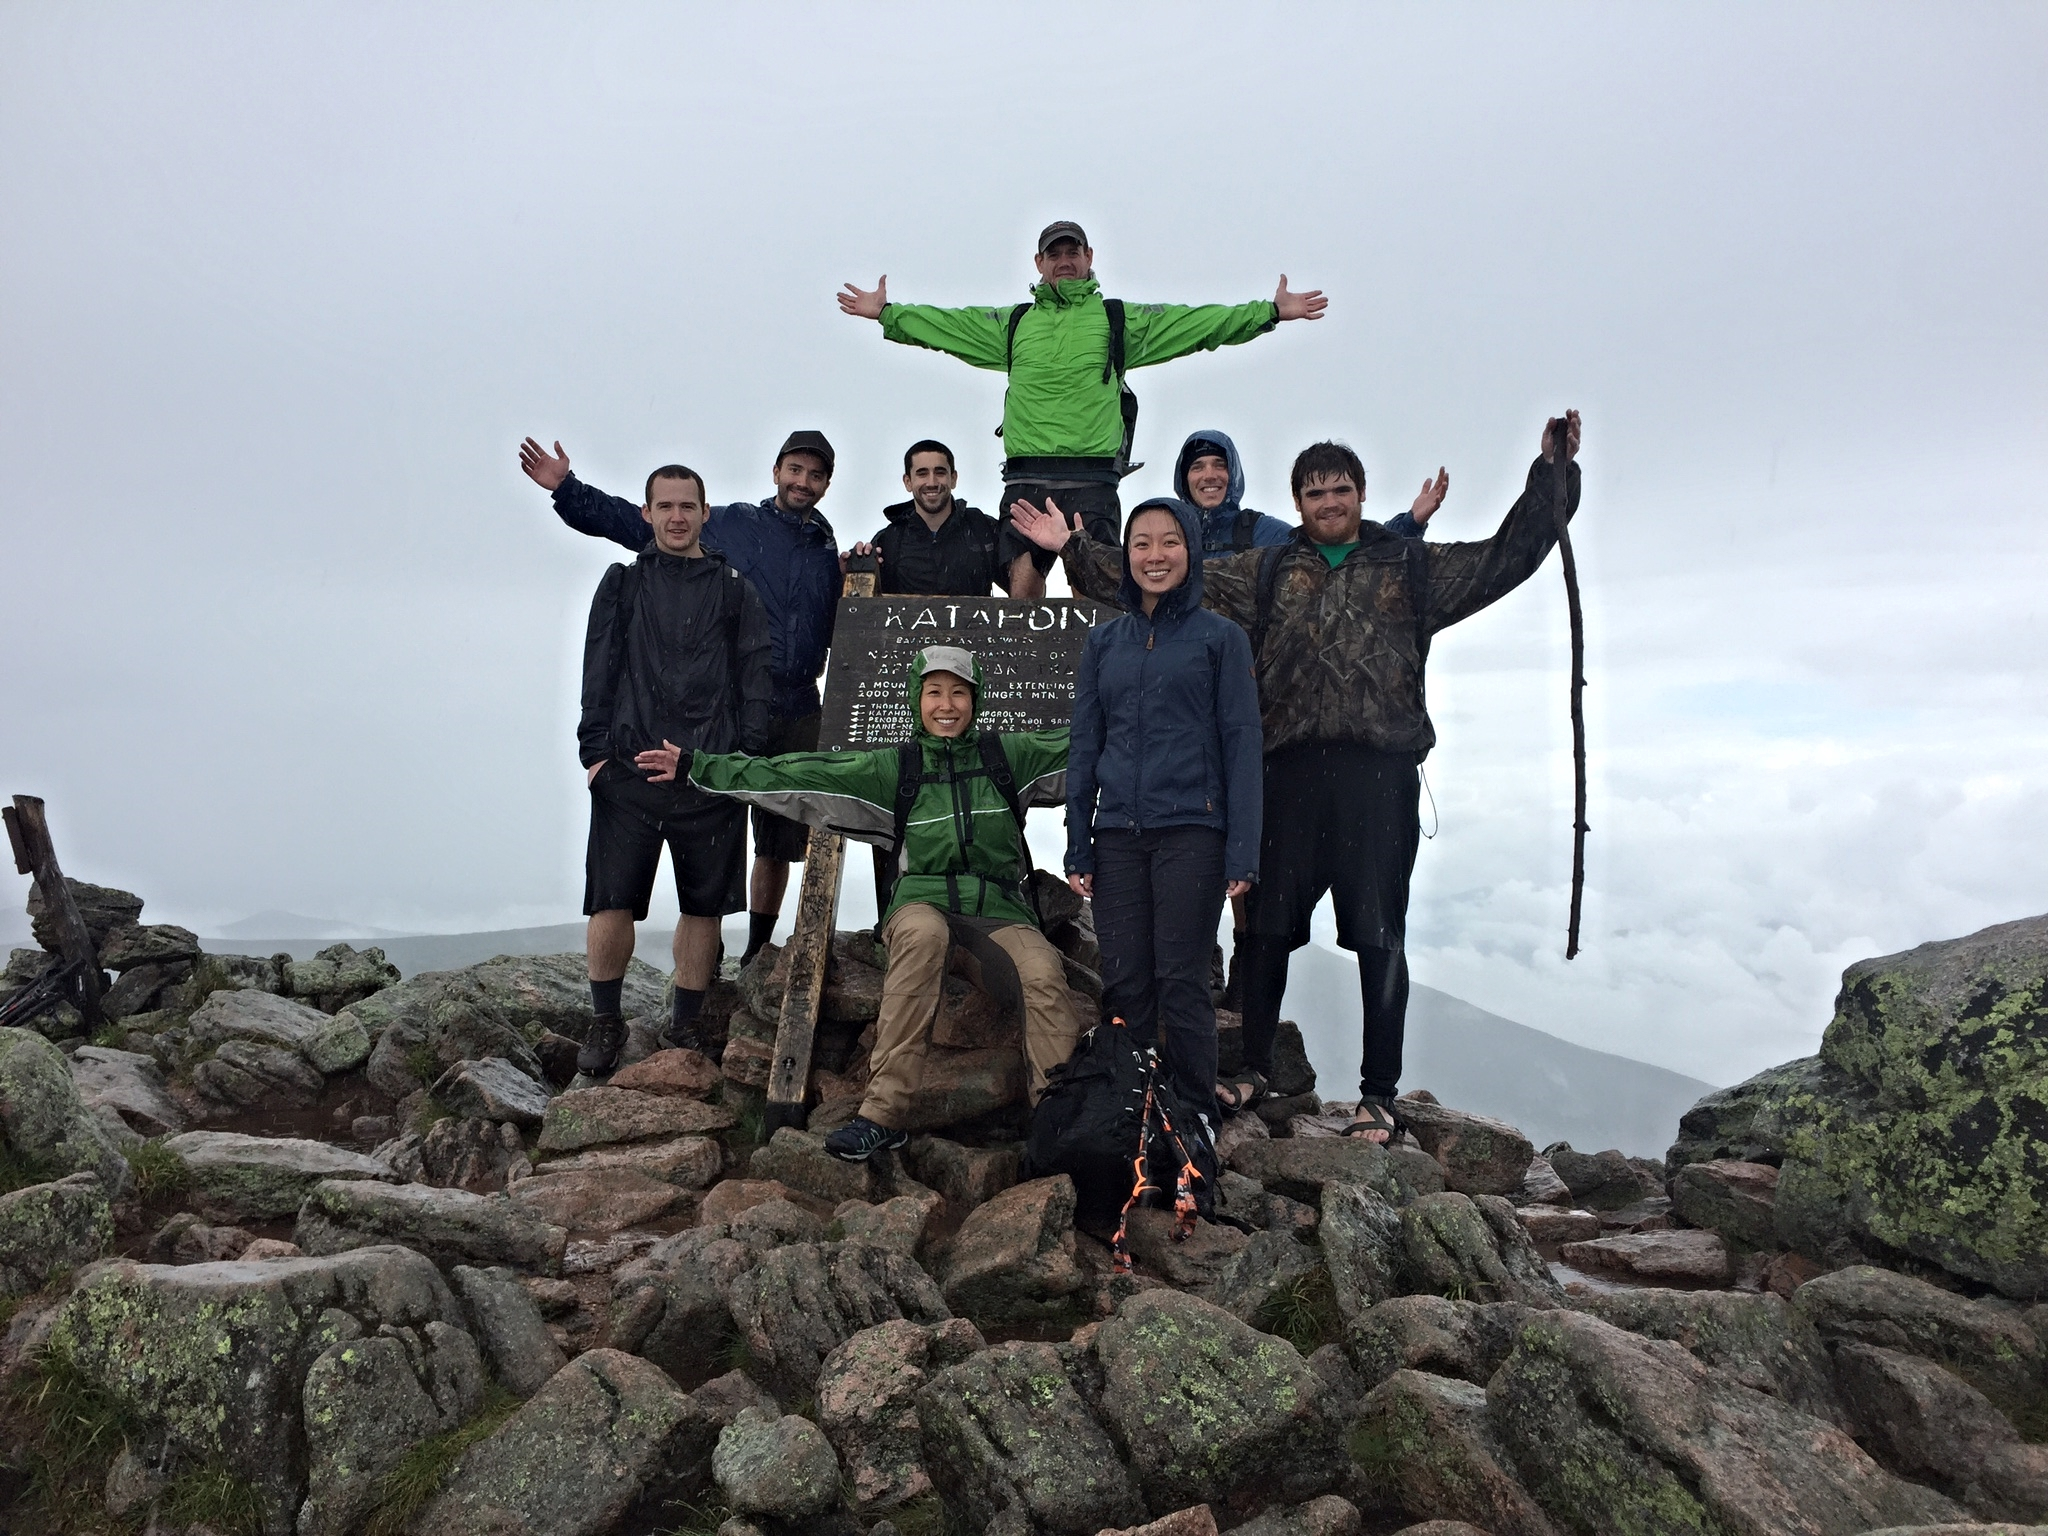 At the summit of Mount Katahdin in Baxter State Park. This is the terminus of the Appalachian Trail!